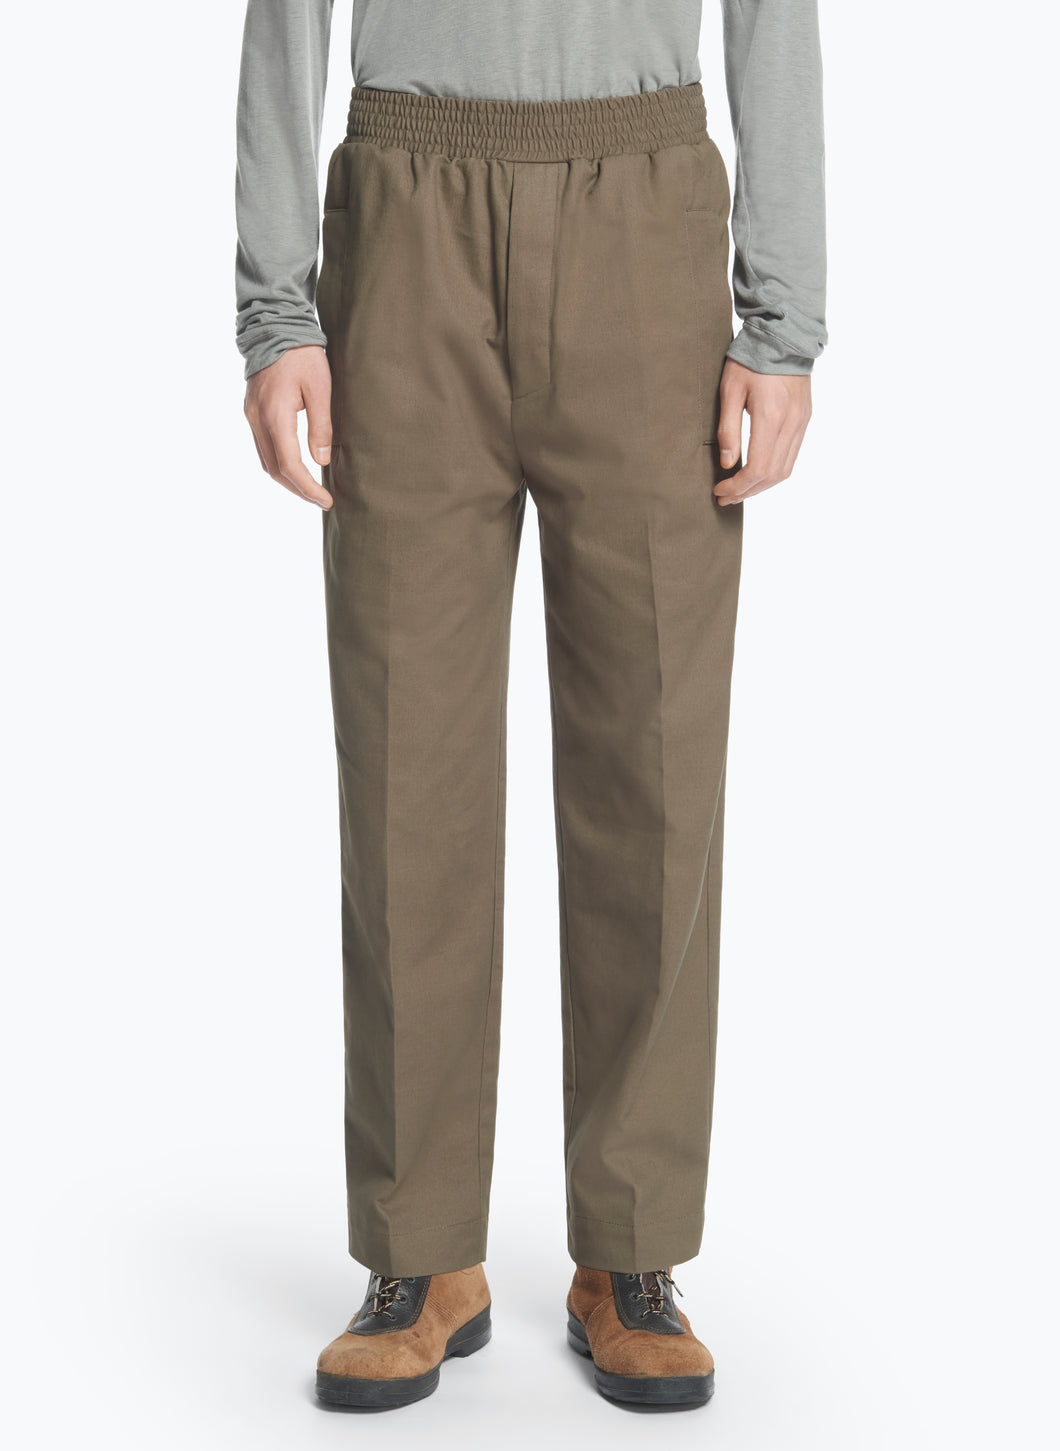 Pants with Large Elastic Waist in Olive Gabardine